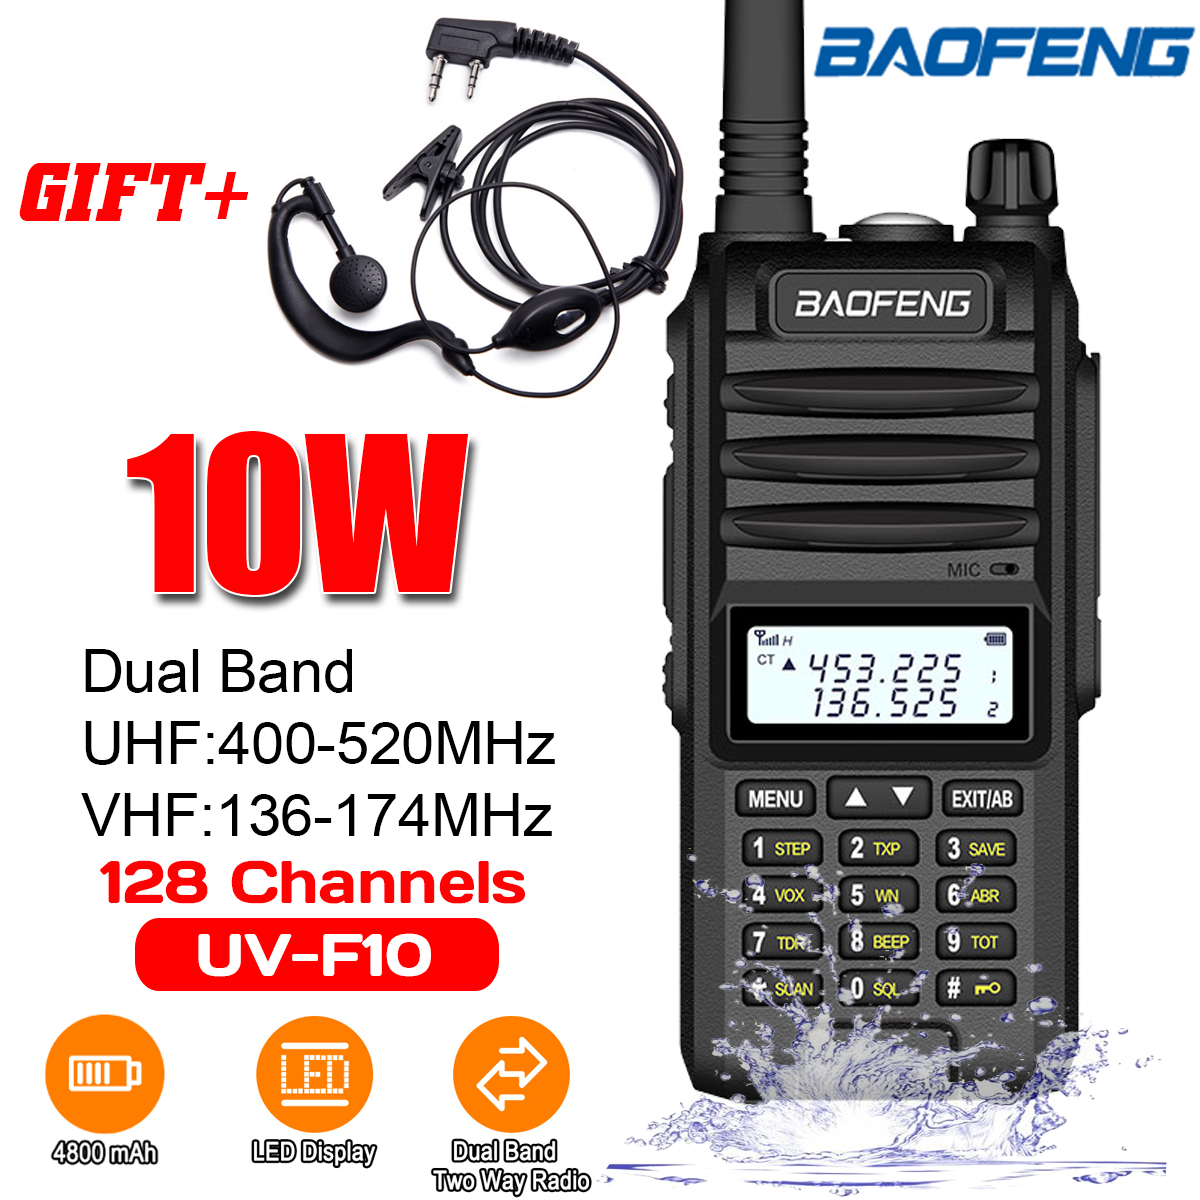 4800mah Baofeng BF-UVF10 Walkie Talkie VHF UHF Dual Band Handheld Two Way Radio VHF UHF Portable Radio 15km Talk-Range